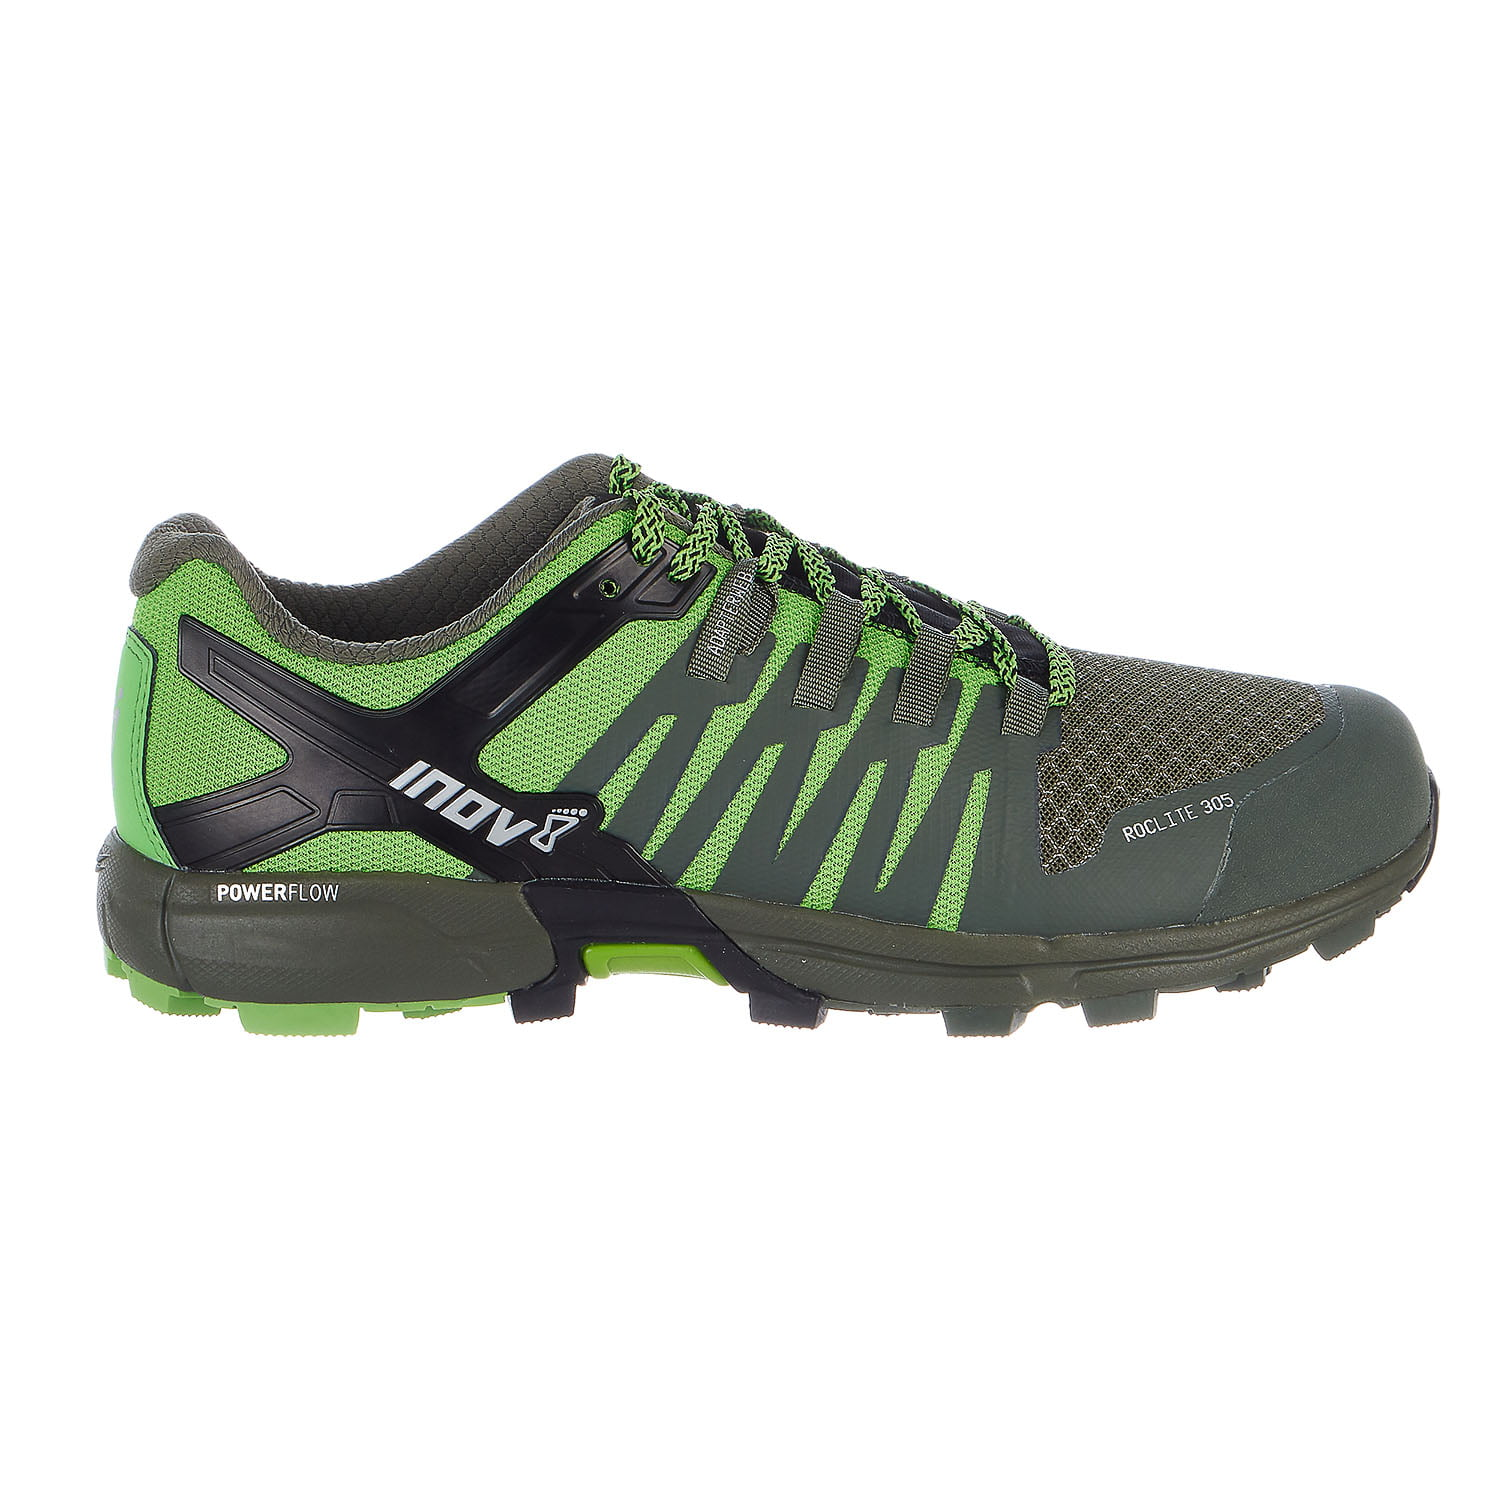 Click here to buy Inov-8 Roclite 305 Hiking Boot Sneaker Trail Running Shoe Mens by Inov-8.